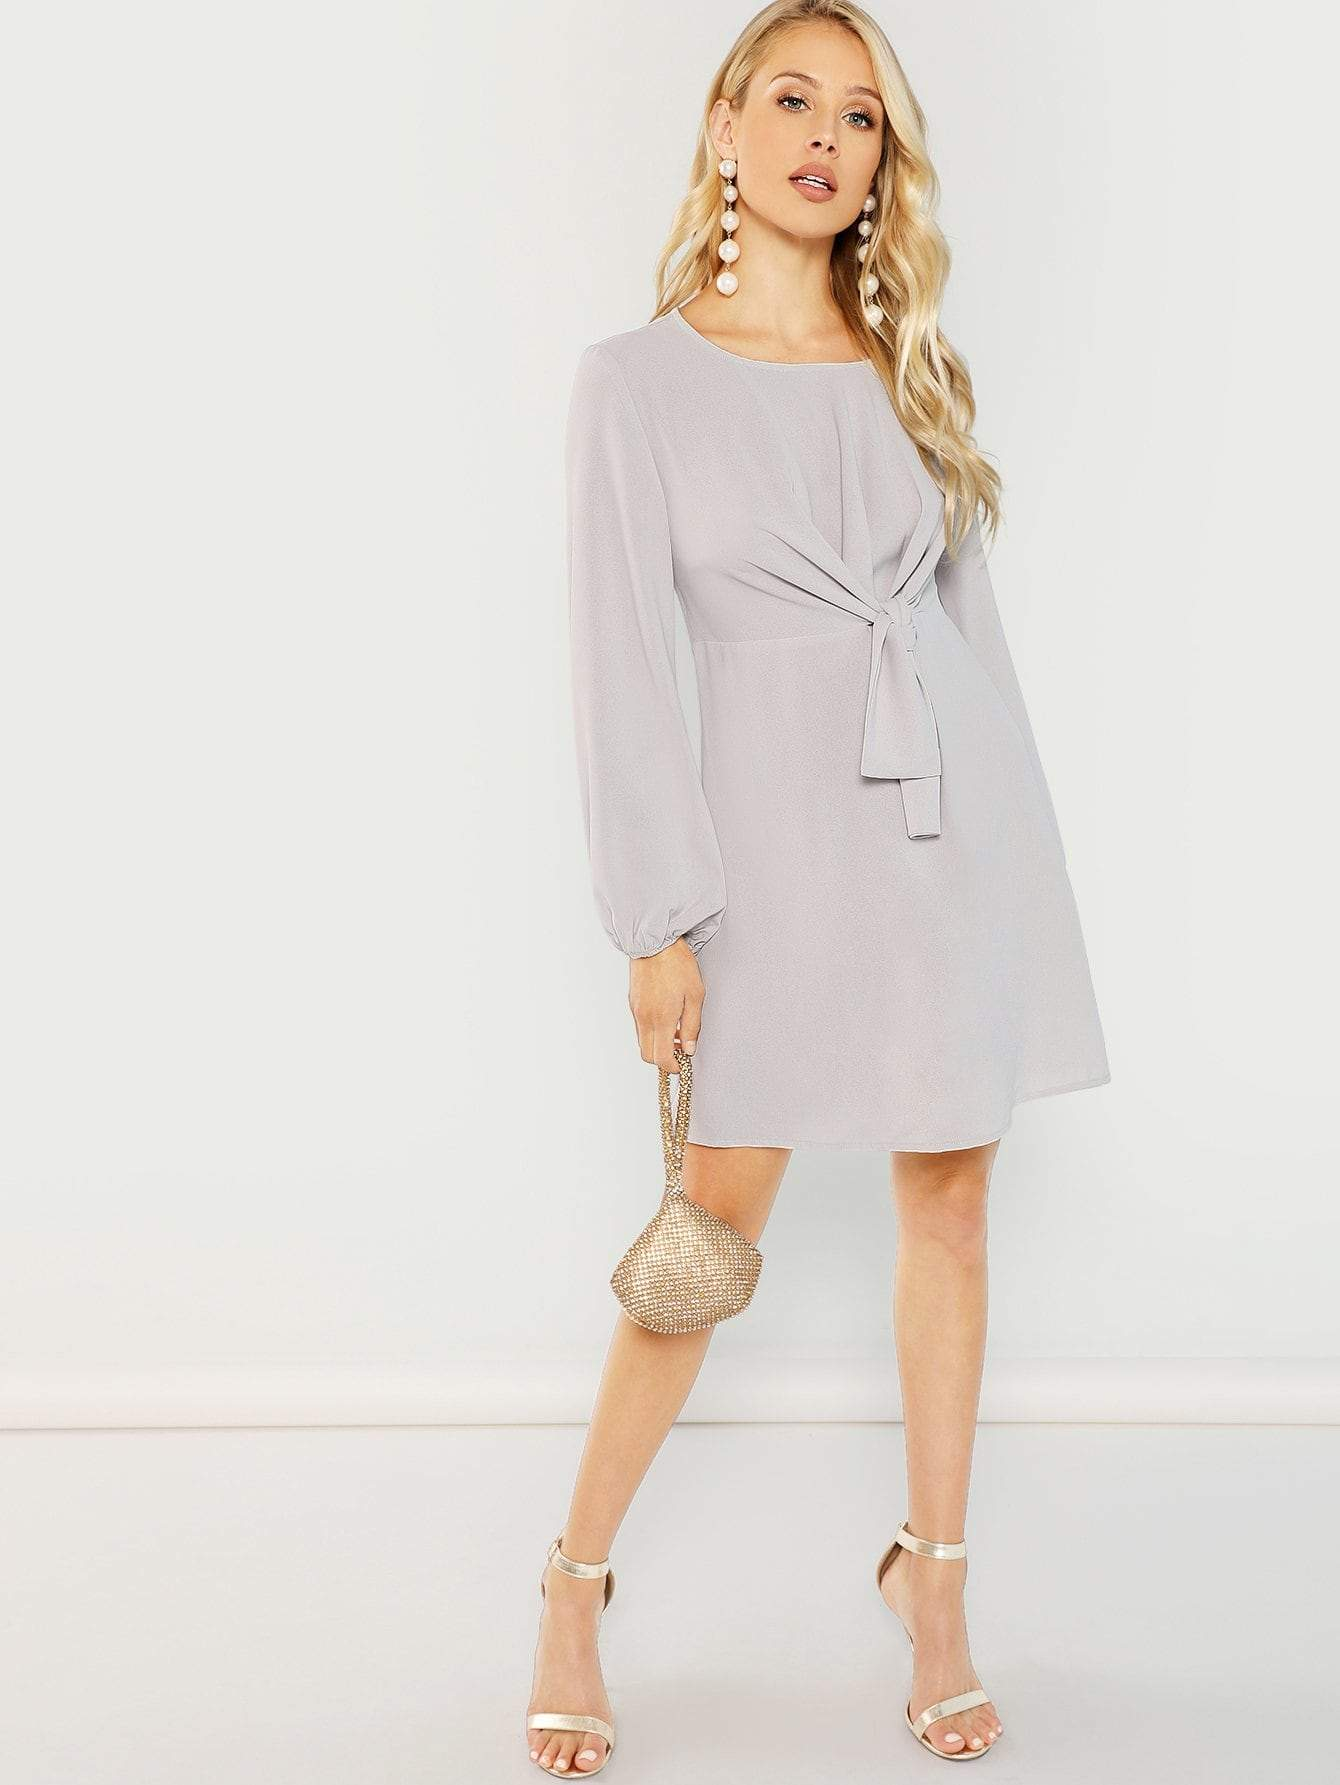 Bishop Sleeve Knot Dress - LoveSylvester